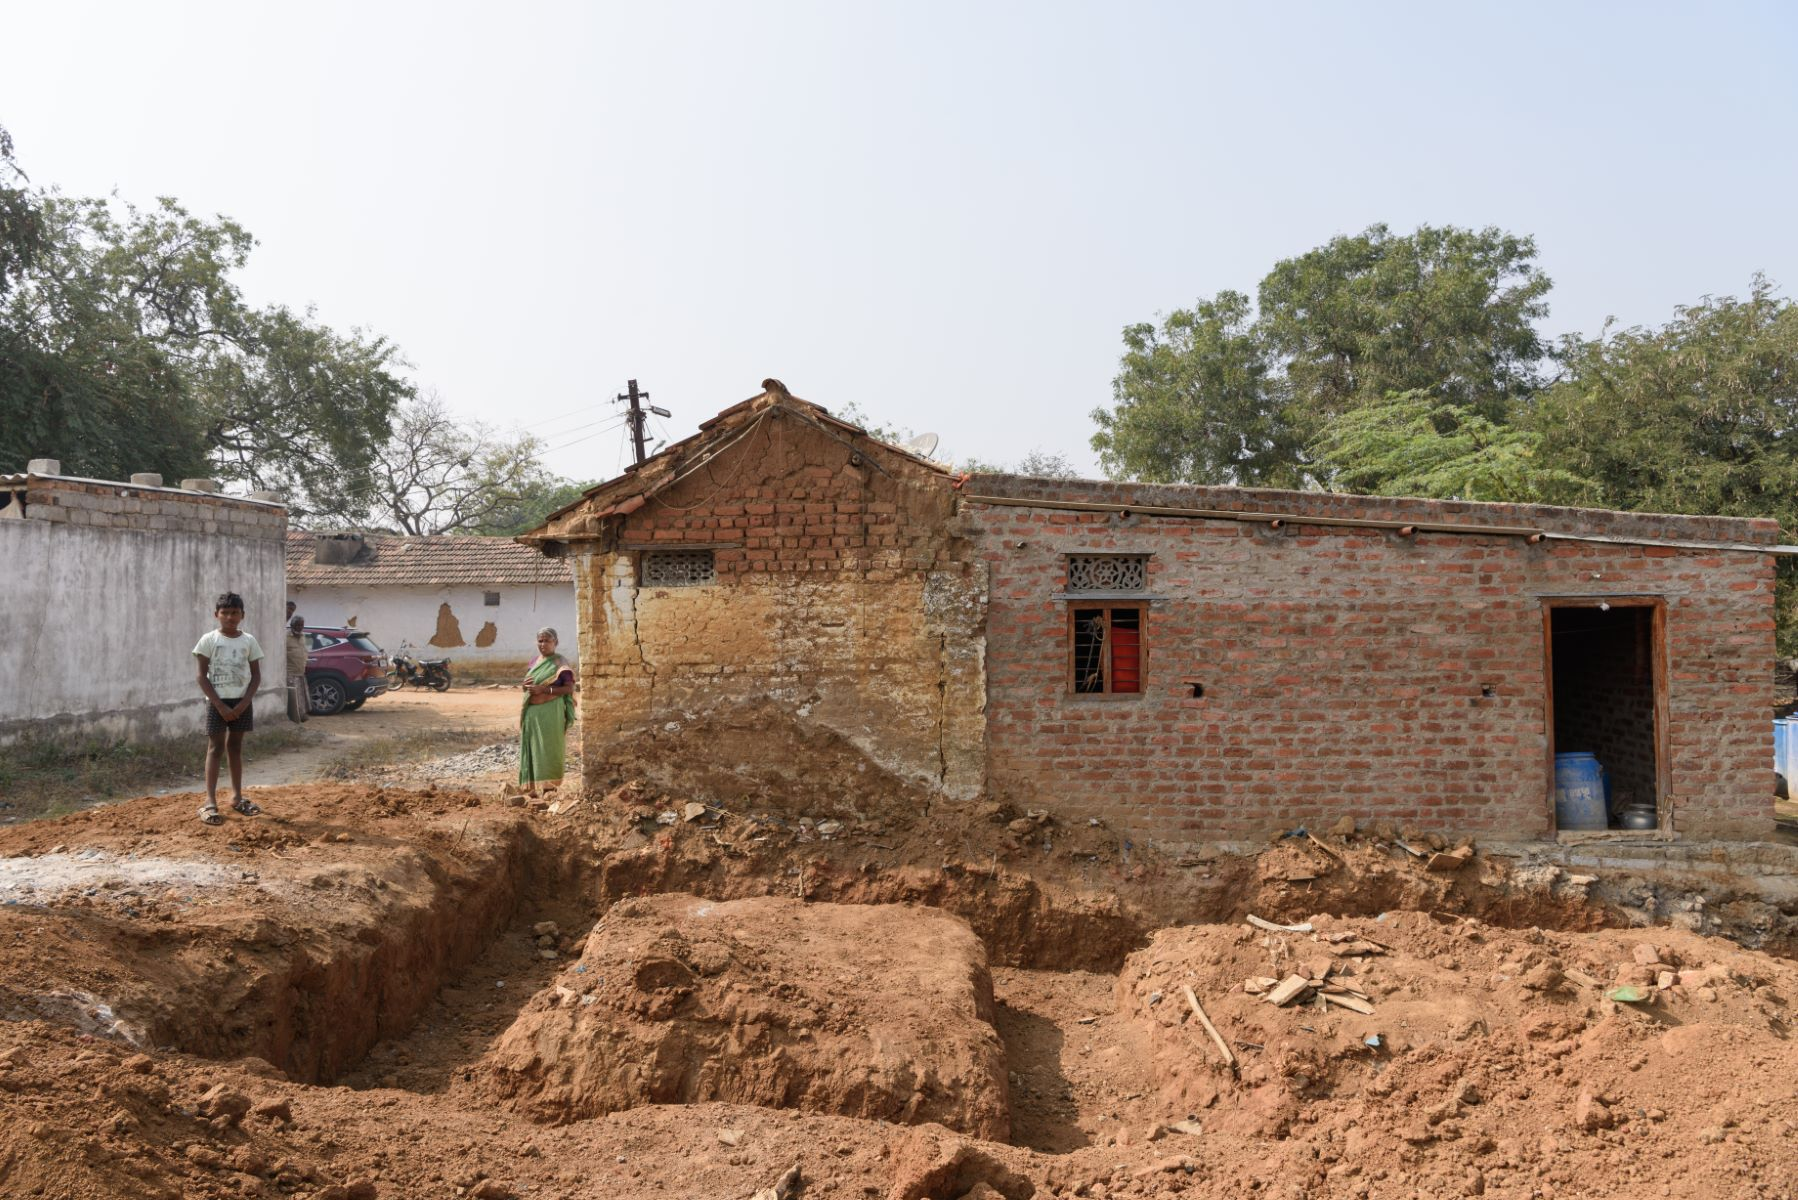 The remains Pilla Mulla Yellama's mud house that was washed away in the October rains